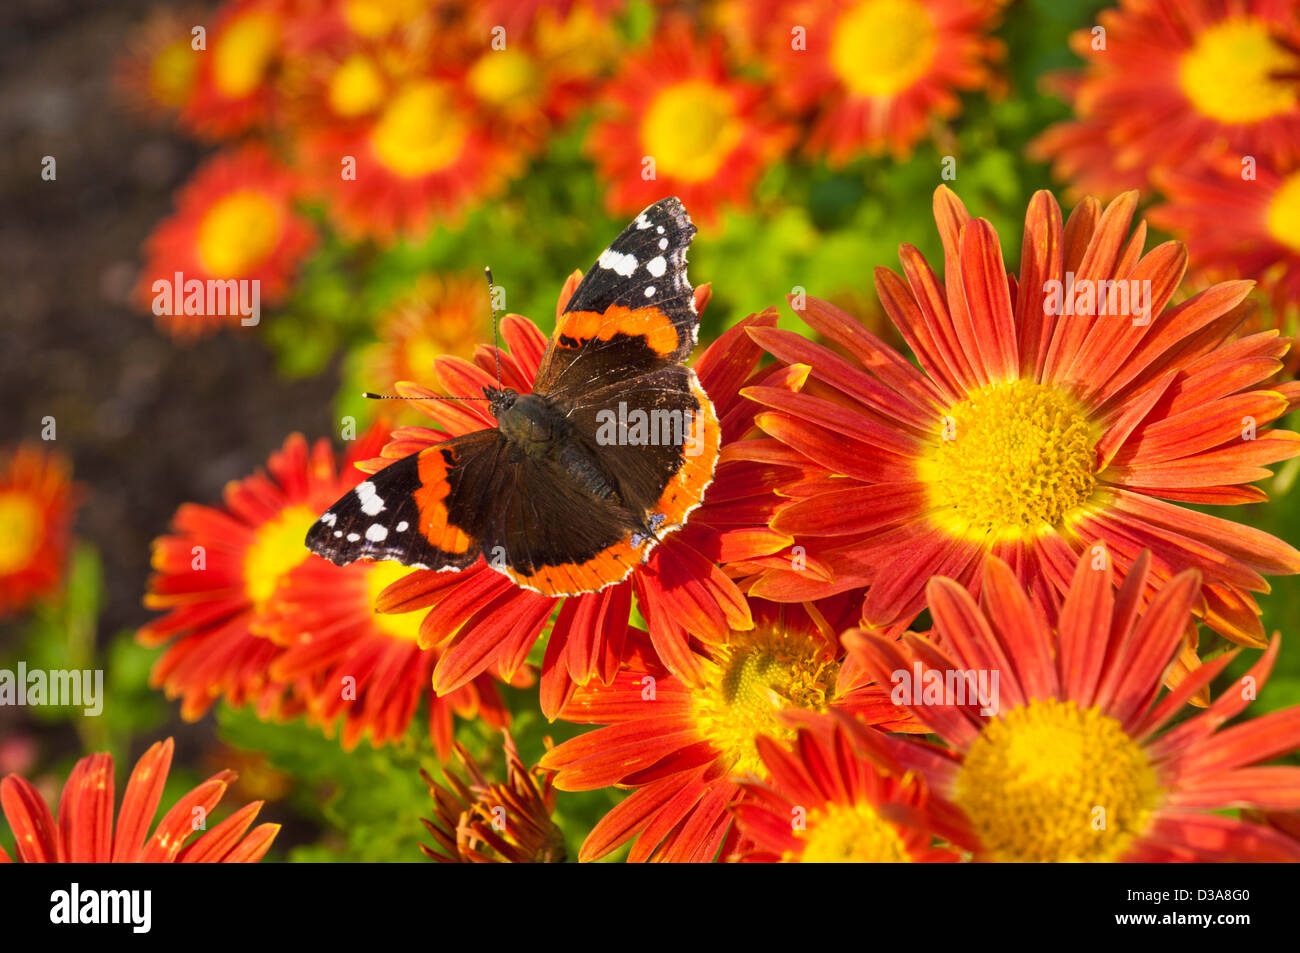 Red Admiral butterfly Vanessa atalanta, on chrysanthemum flowers uk - Stock Image